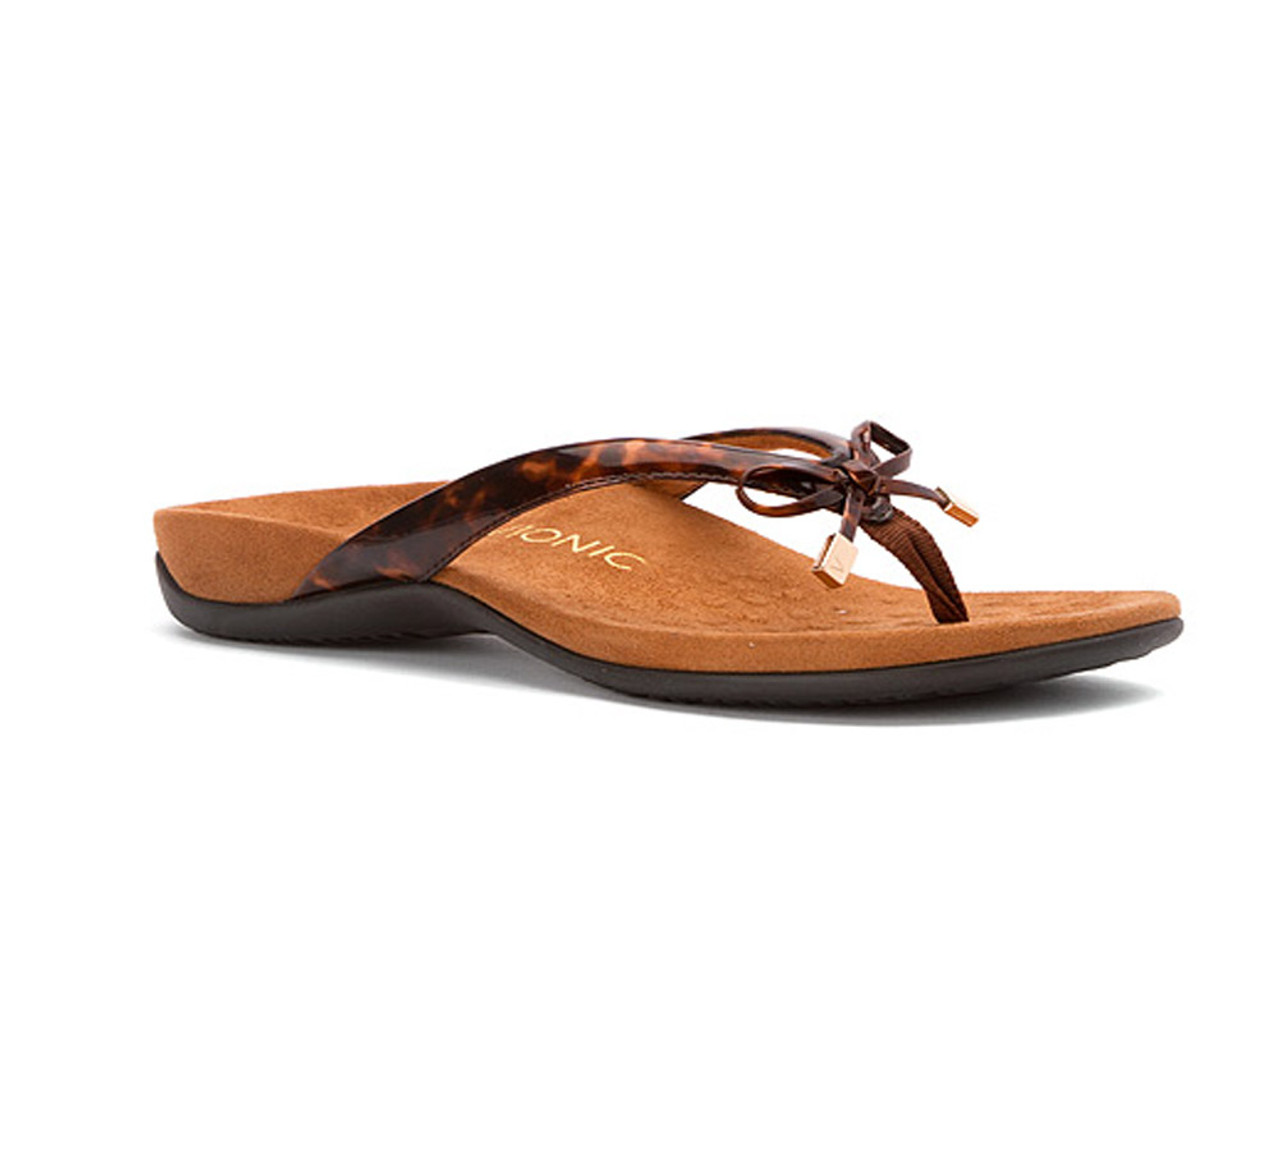 6901c6d84c57af Vionic Women s Rest Bella II Flip Flop Tortoise - Shop now   Shoolu.com